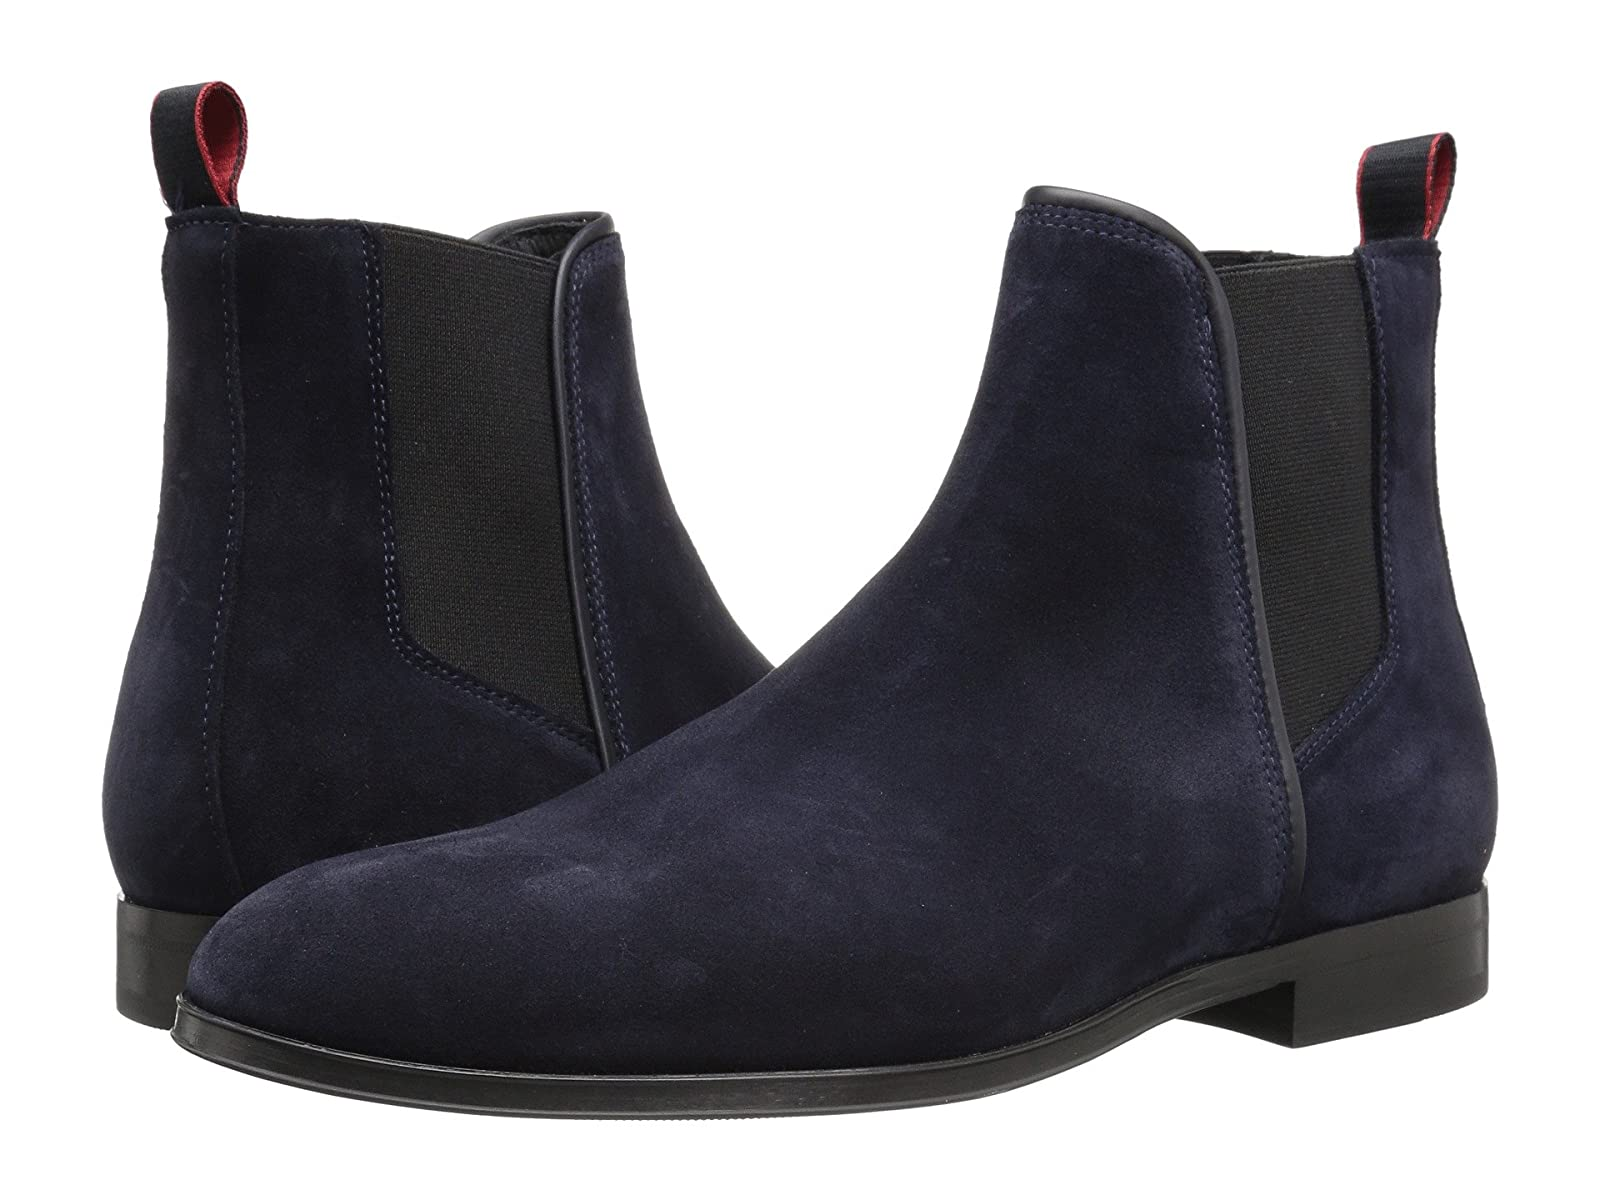 BOSS Hugo Boss Boheme Chelsea Boot Casual by HUGOSelling fashionable and eye-catching shoes